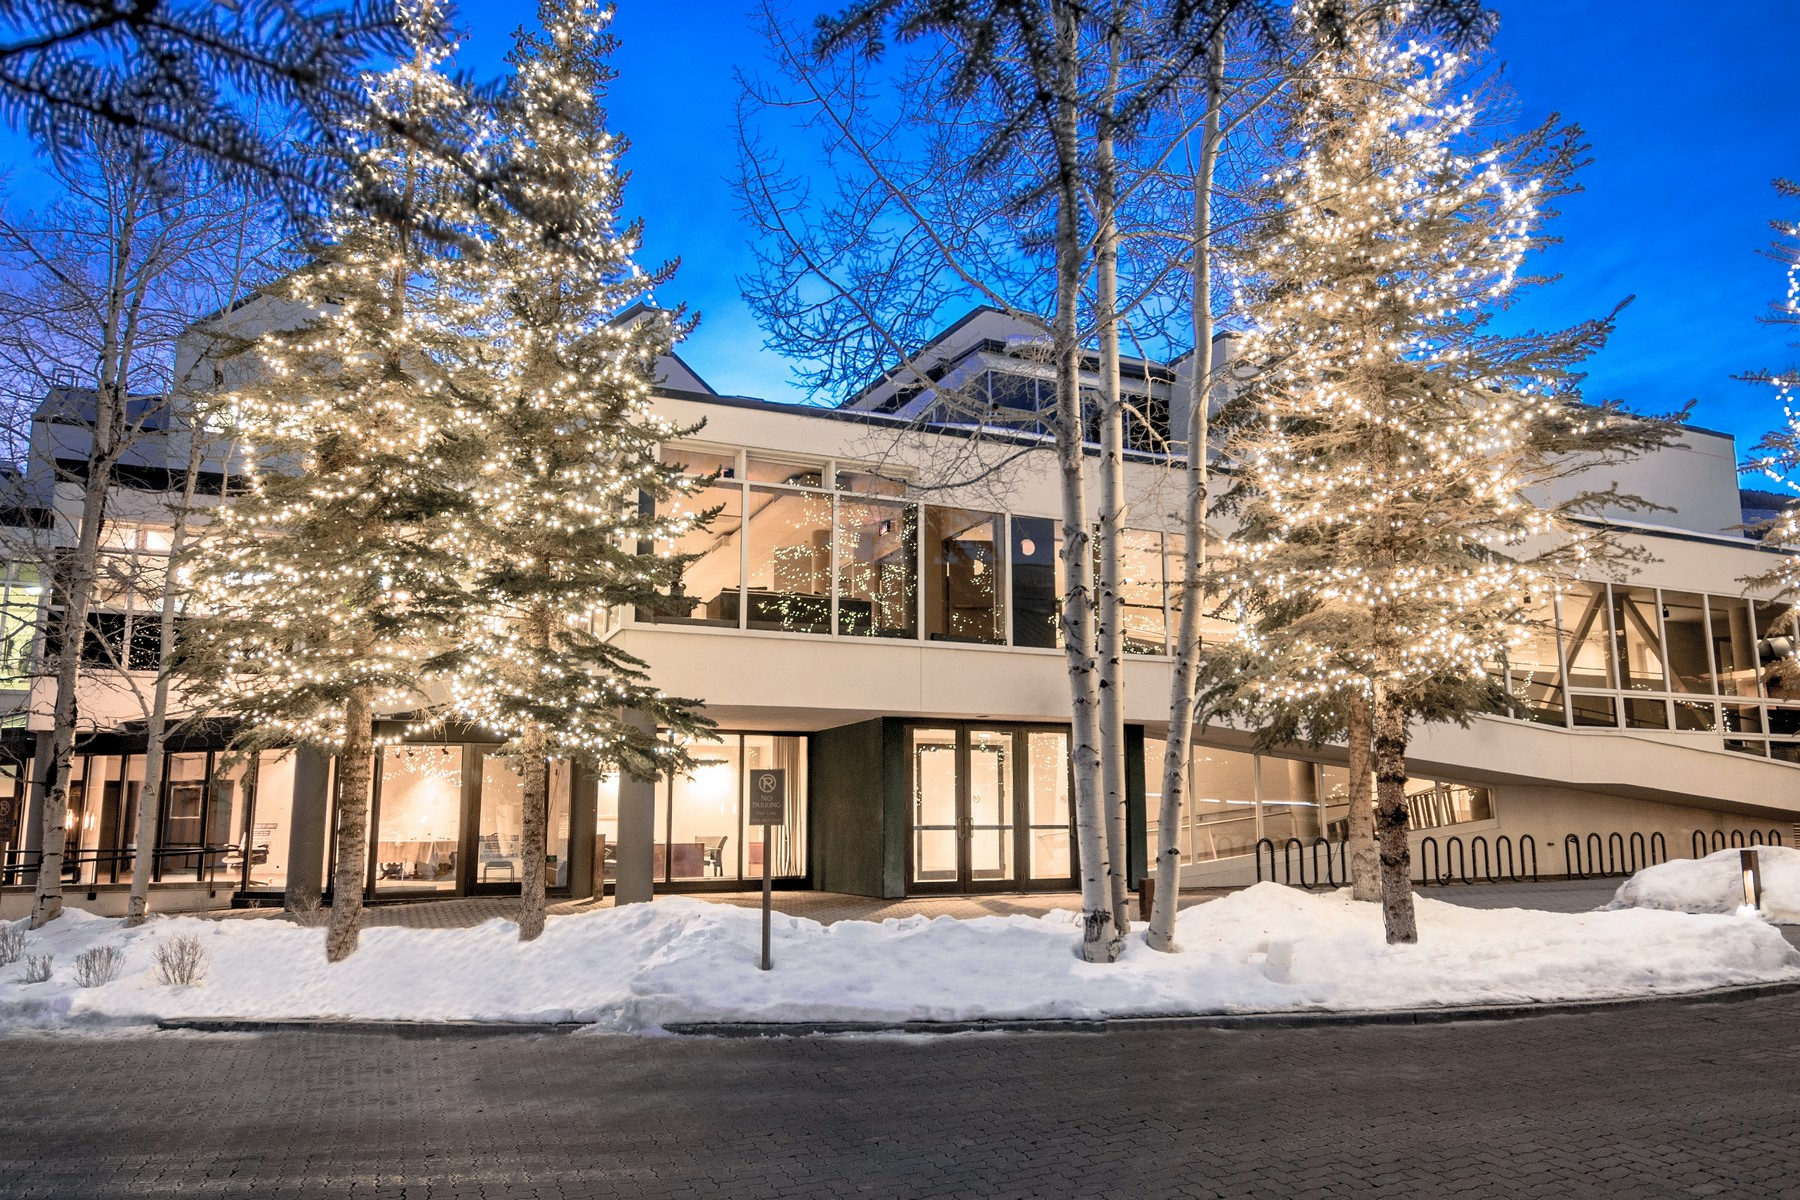 Other Residential for Sale at Cascade Mountain Center 1310 Westhaven Drive Vail, Colorado 81657 United States